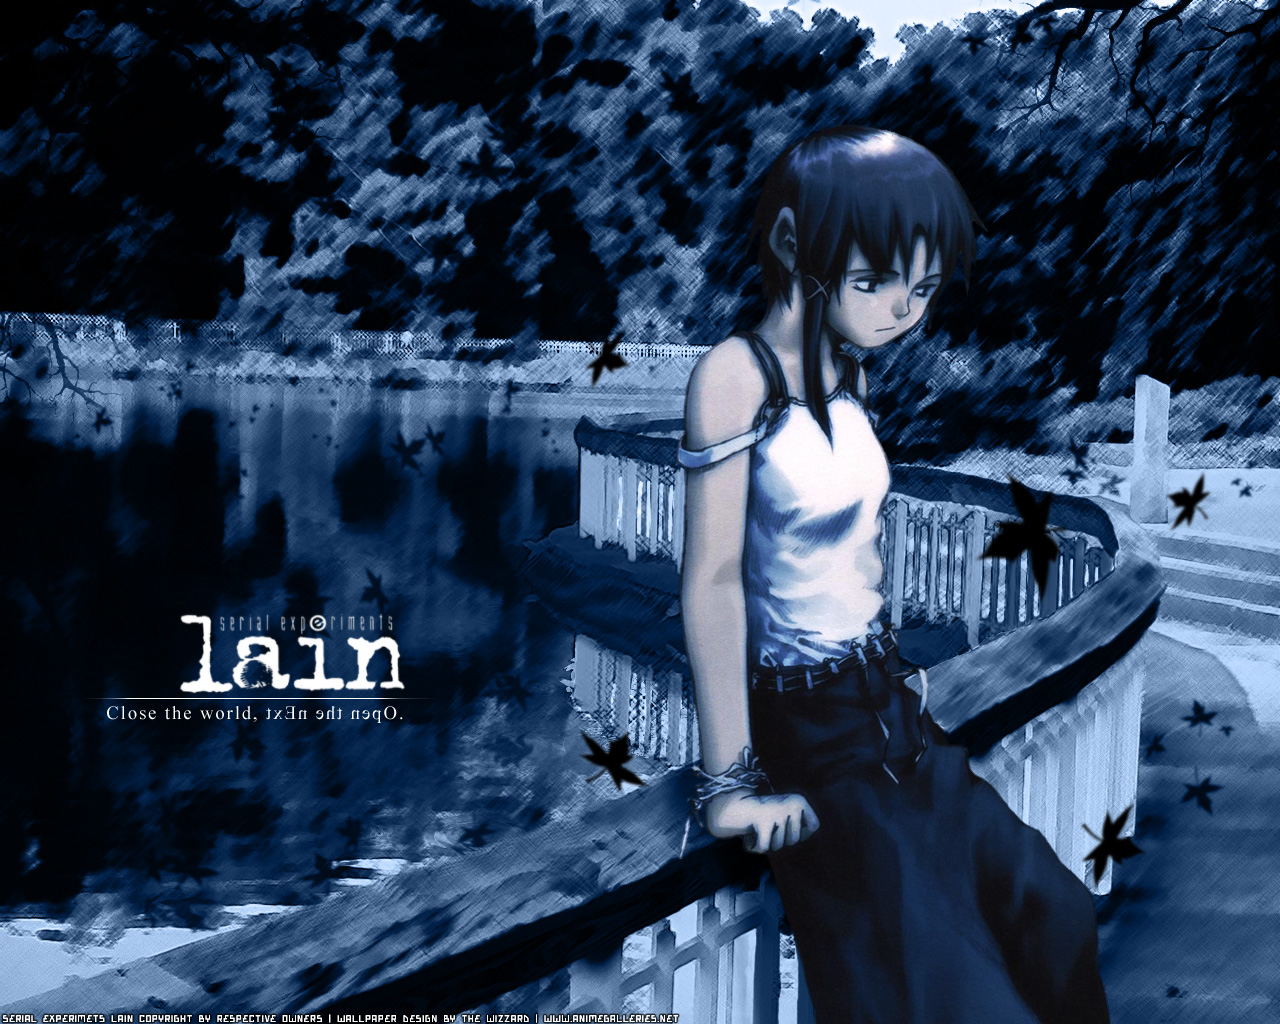 Serial Experiments Lain Movie HD free download 720p